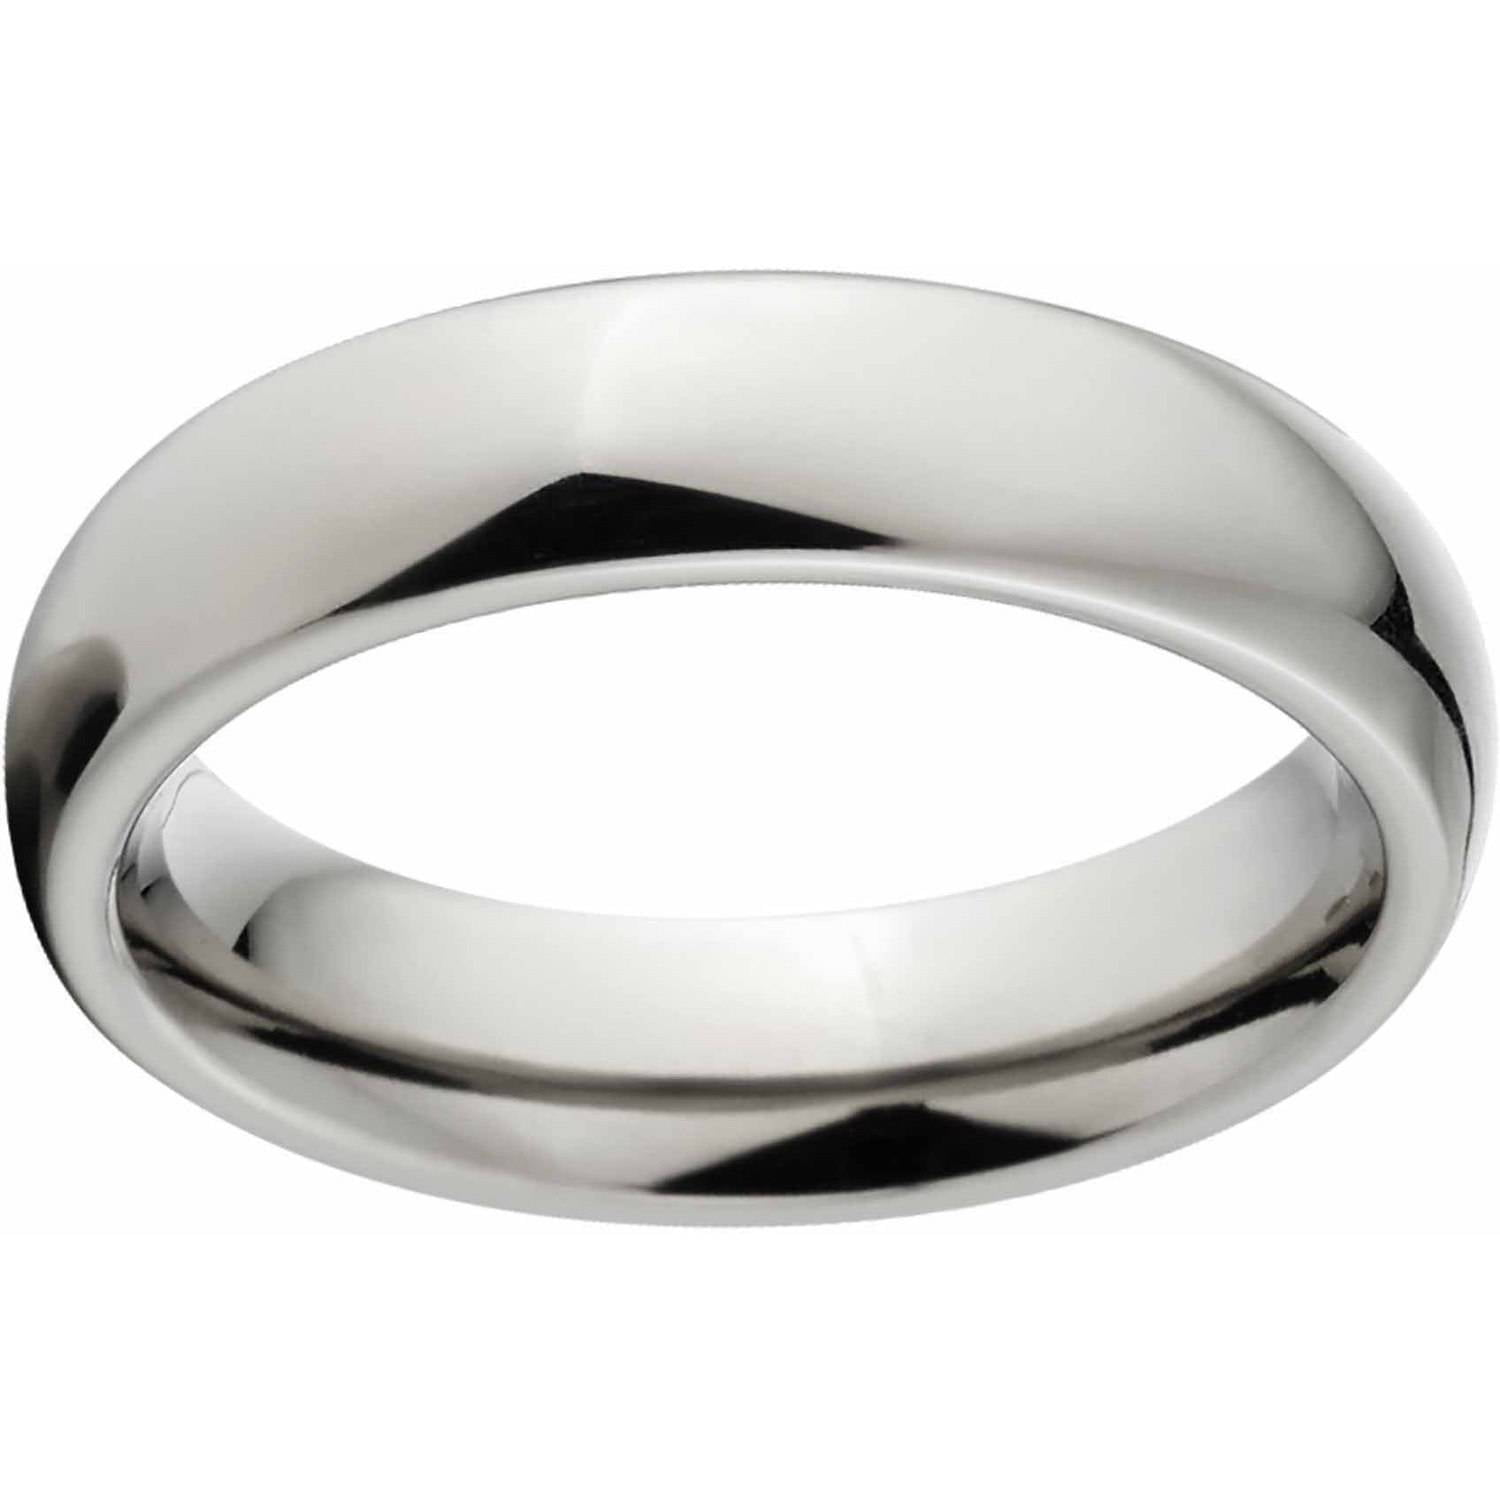 Polished 4mm Titanium Wedding Band with Comfort Fit Design